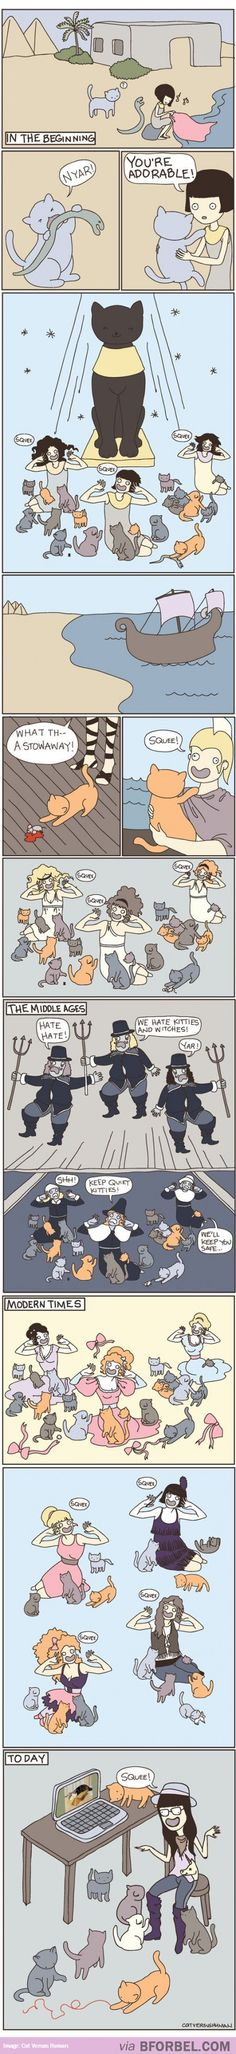 How Cats Ruled The World…